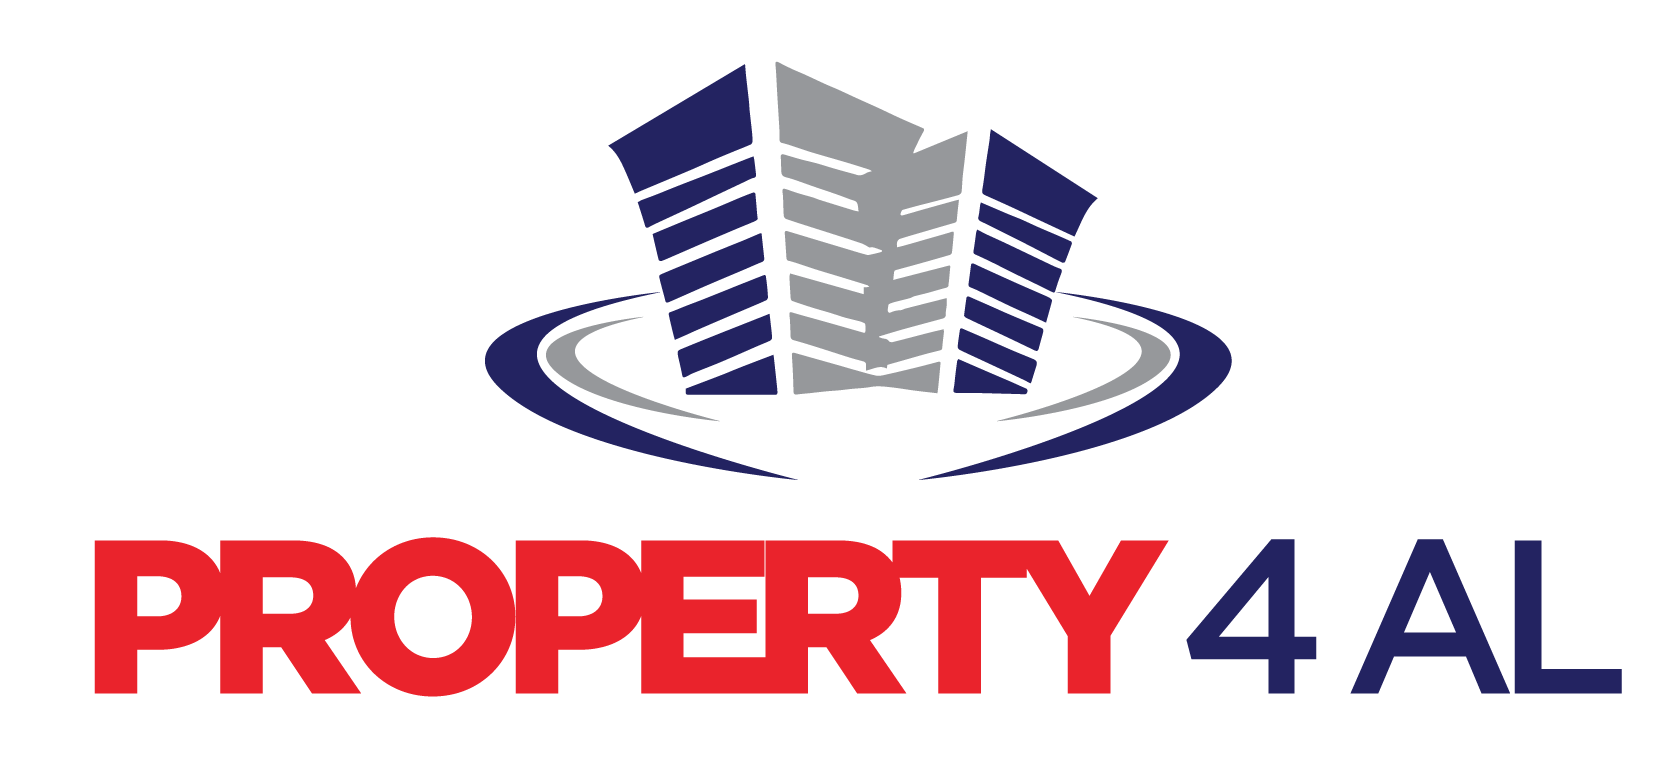 Property4al-Properties for everyone